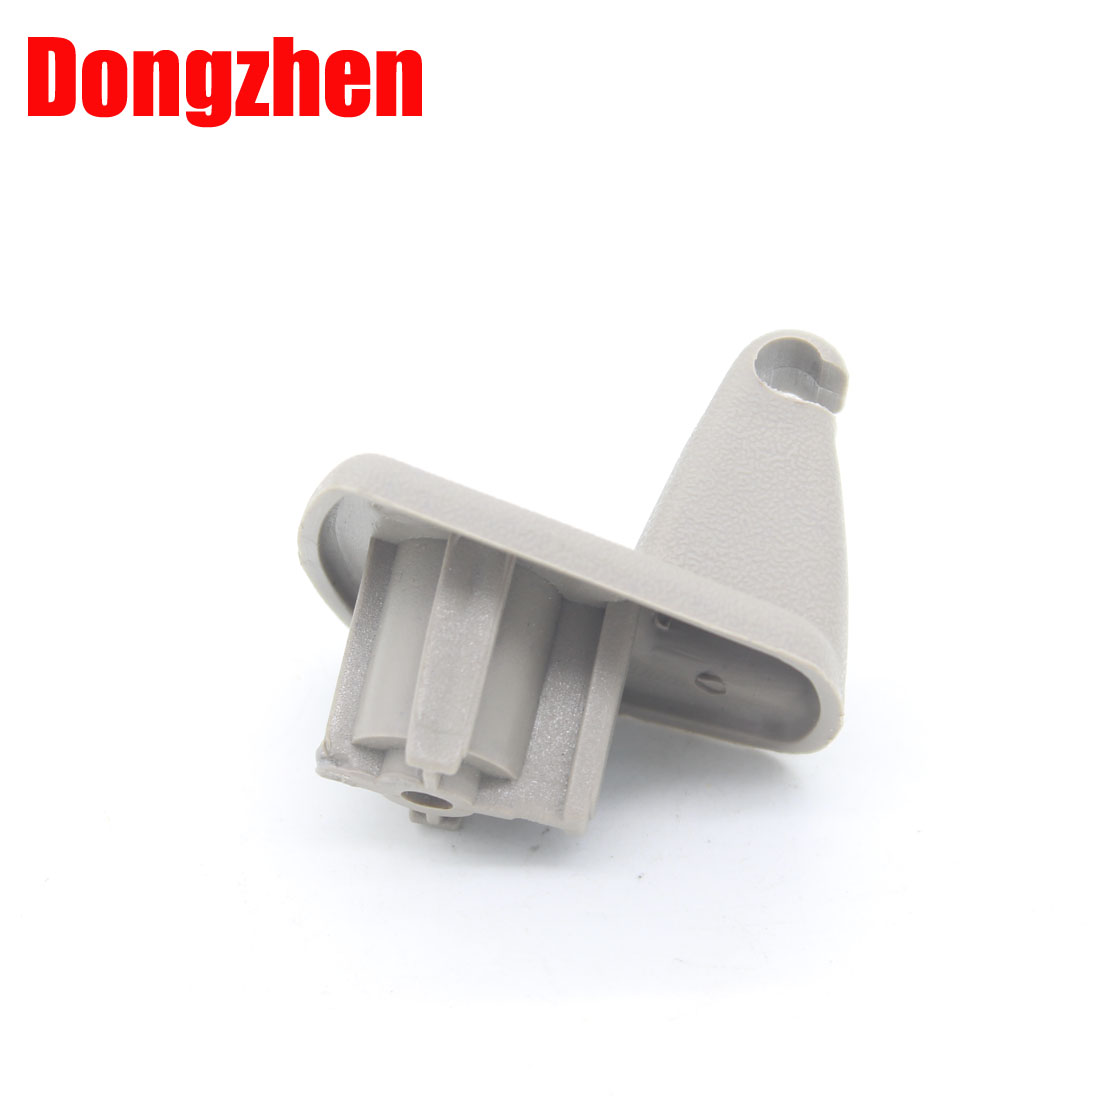 Dongzhen sun visor replacement retain clip fit for chrysler 300 300c dodge charger magnum oem